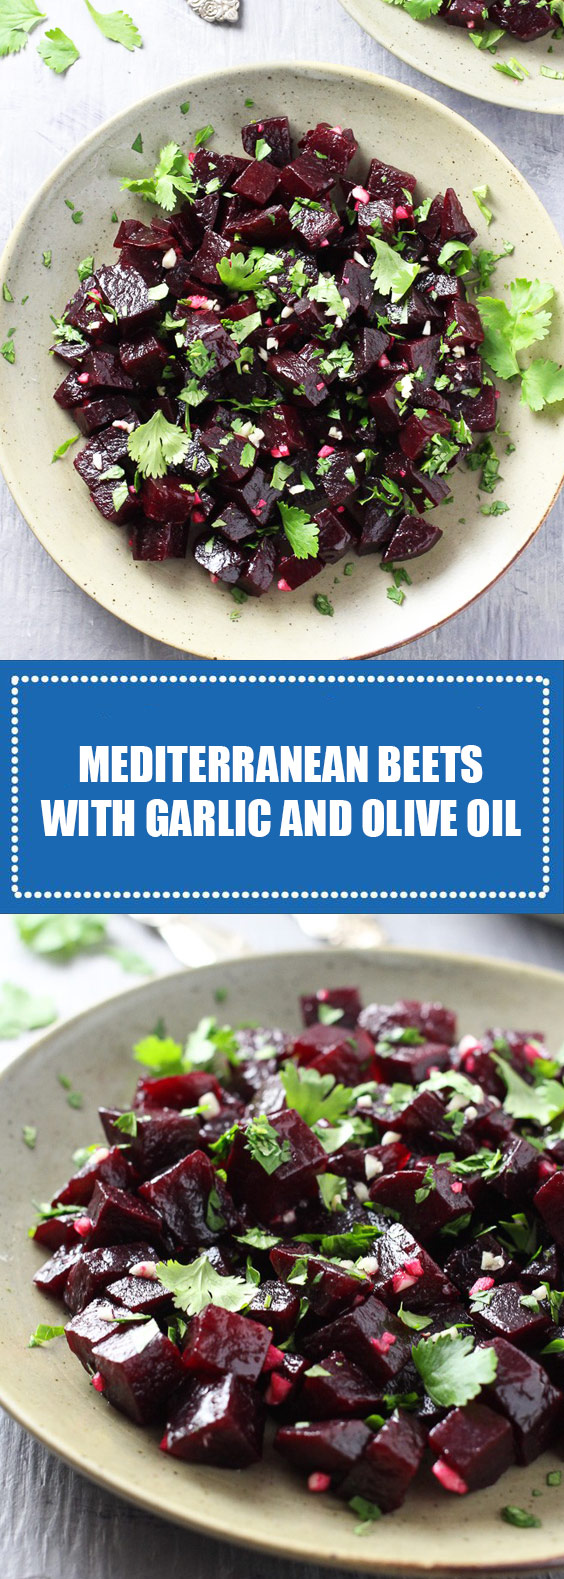 Mediterranean Beets with Garlic and Olive Oil Recipe